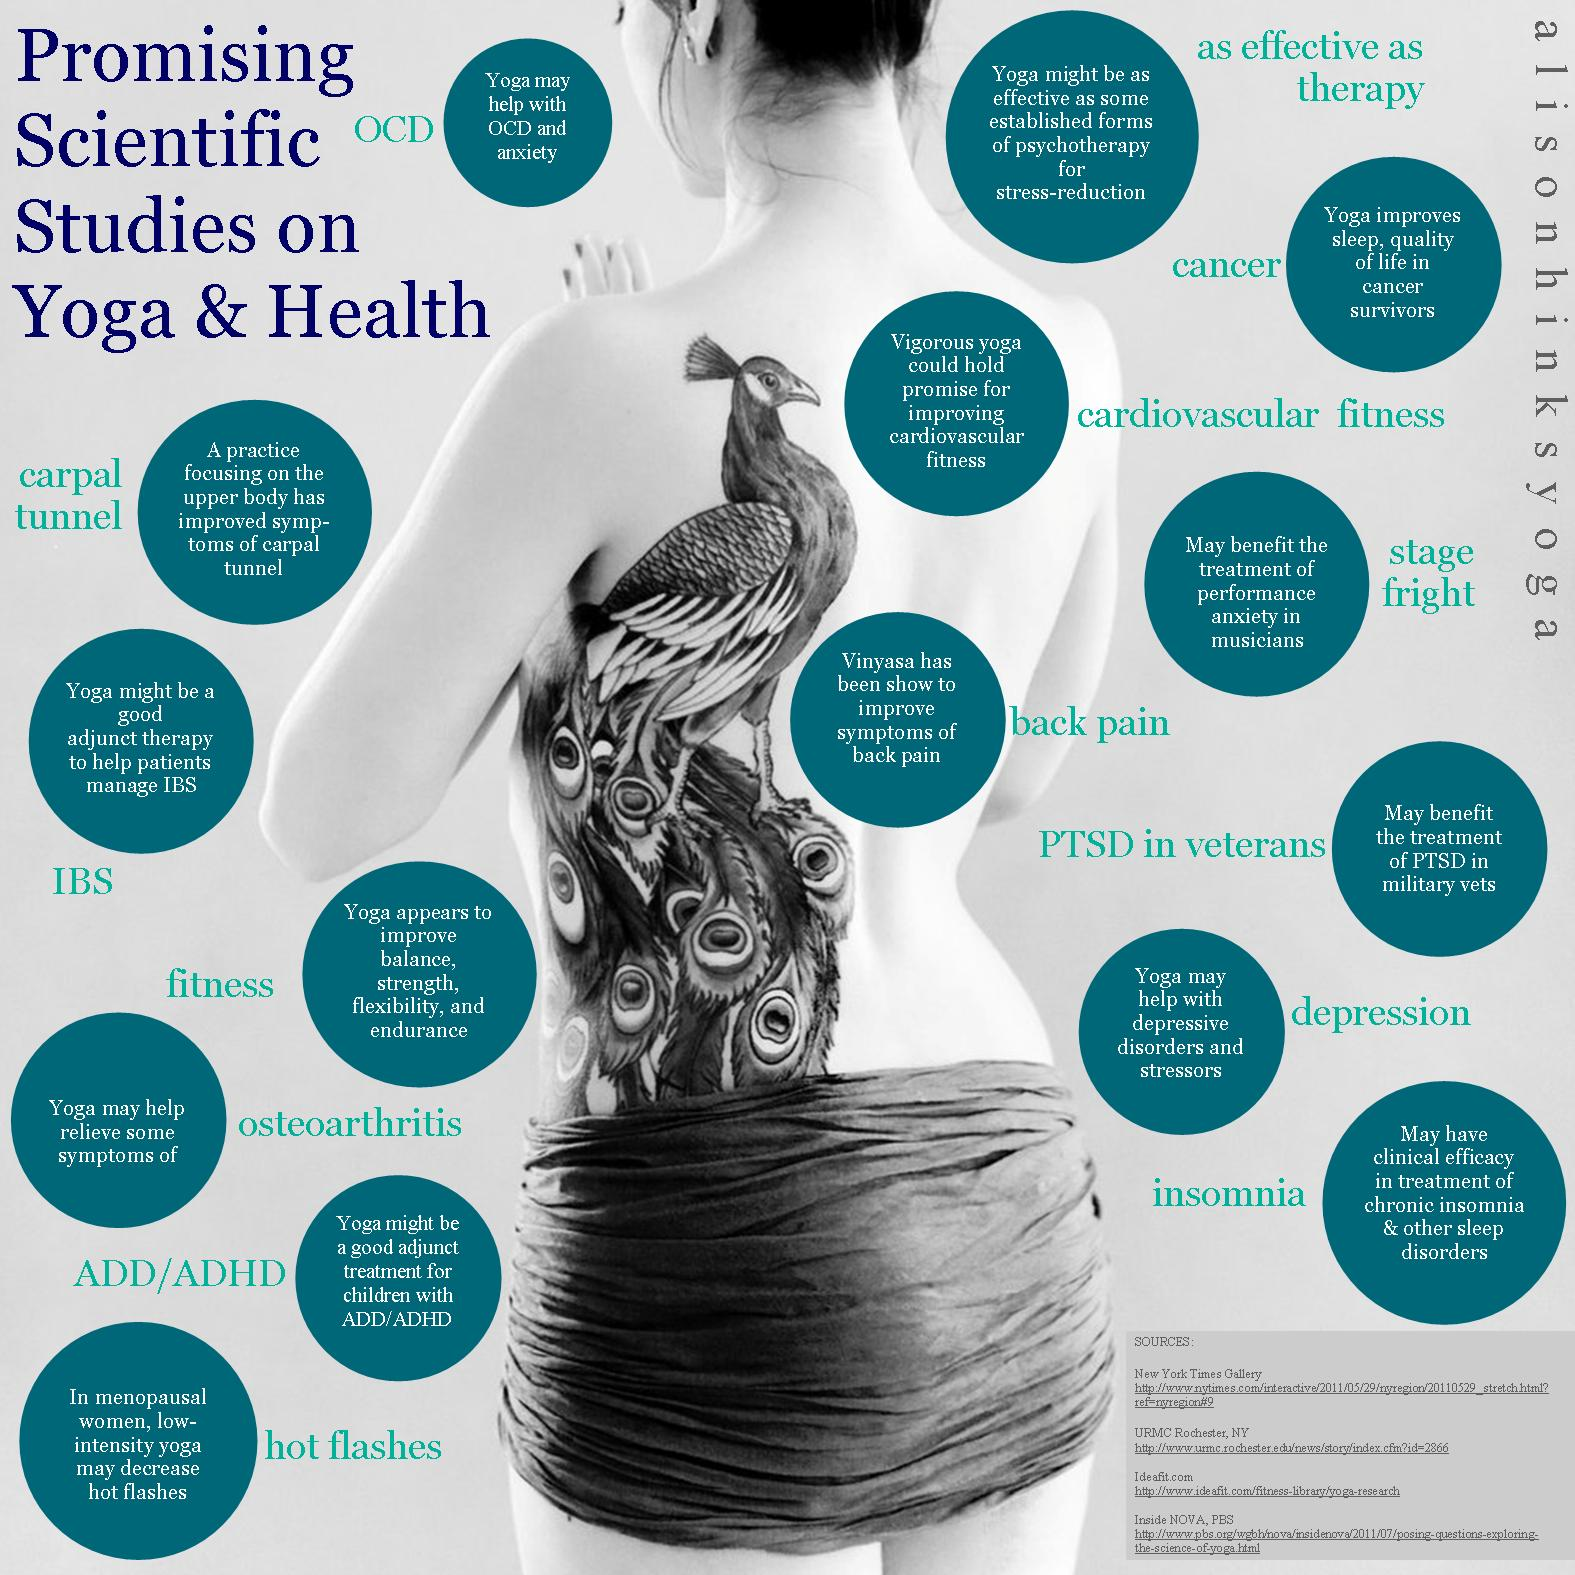 alison hinks yoga science graphic